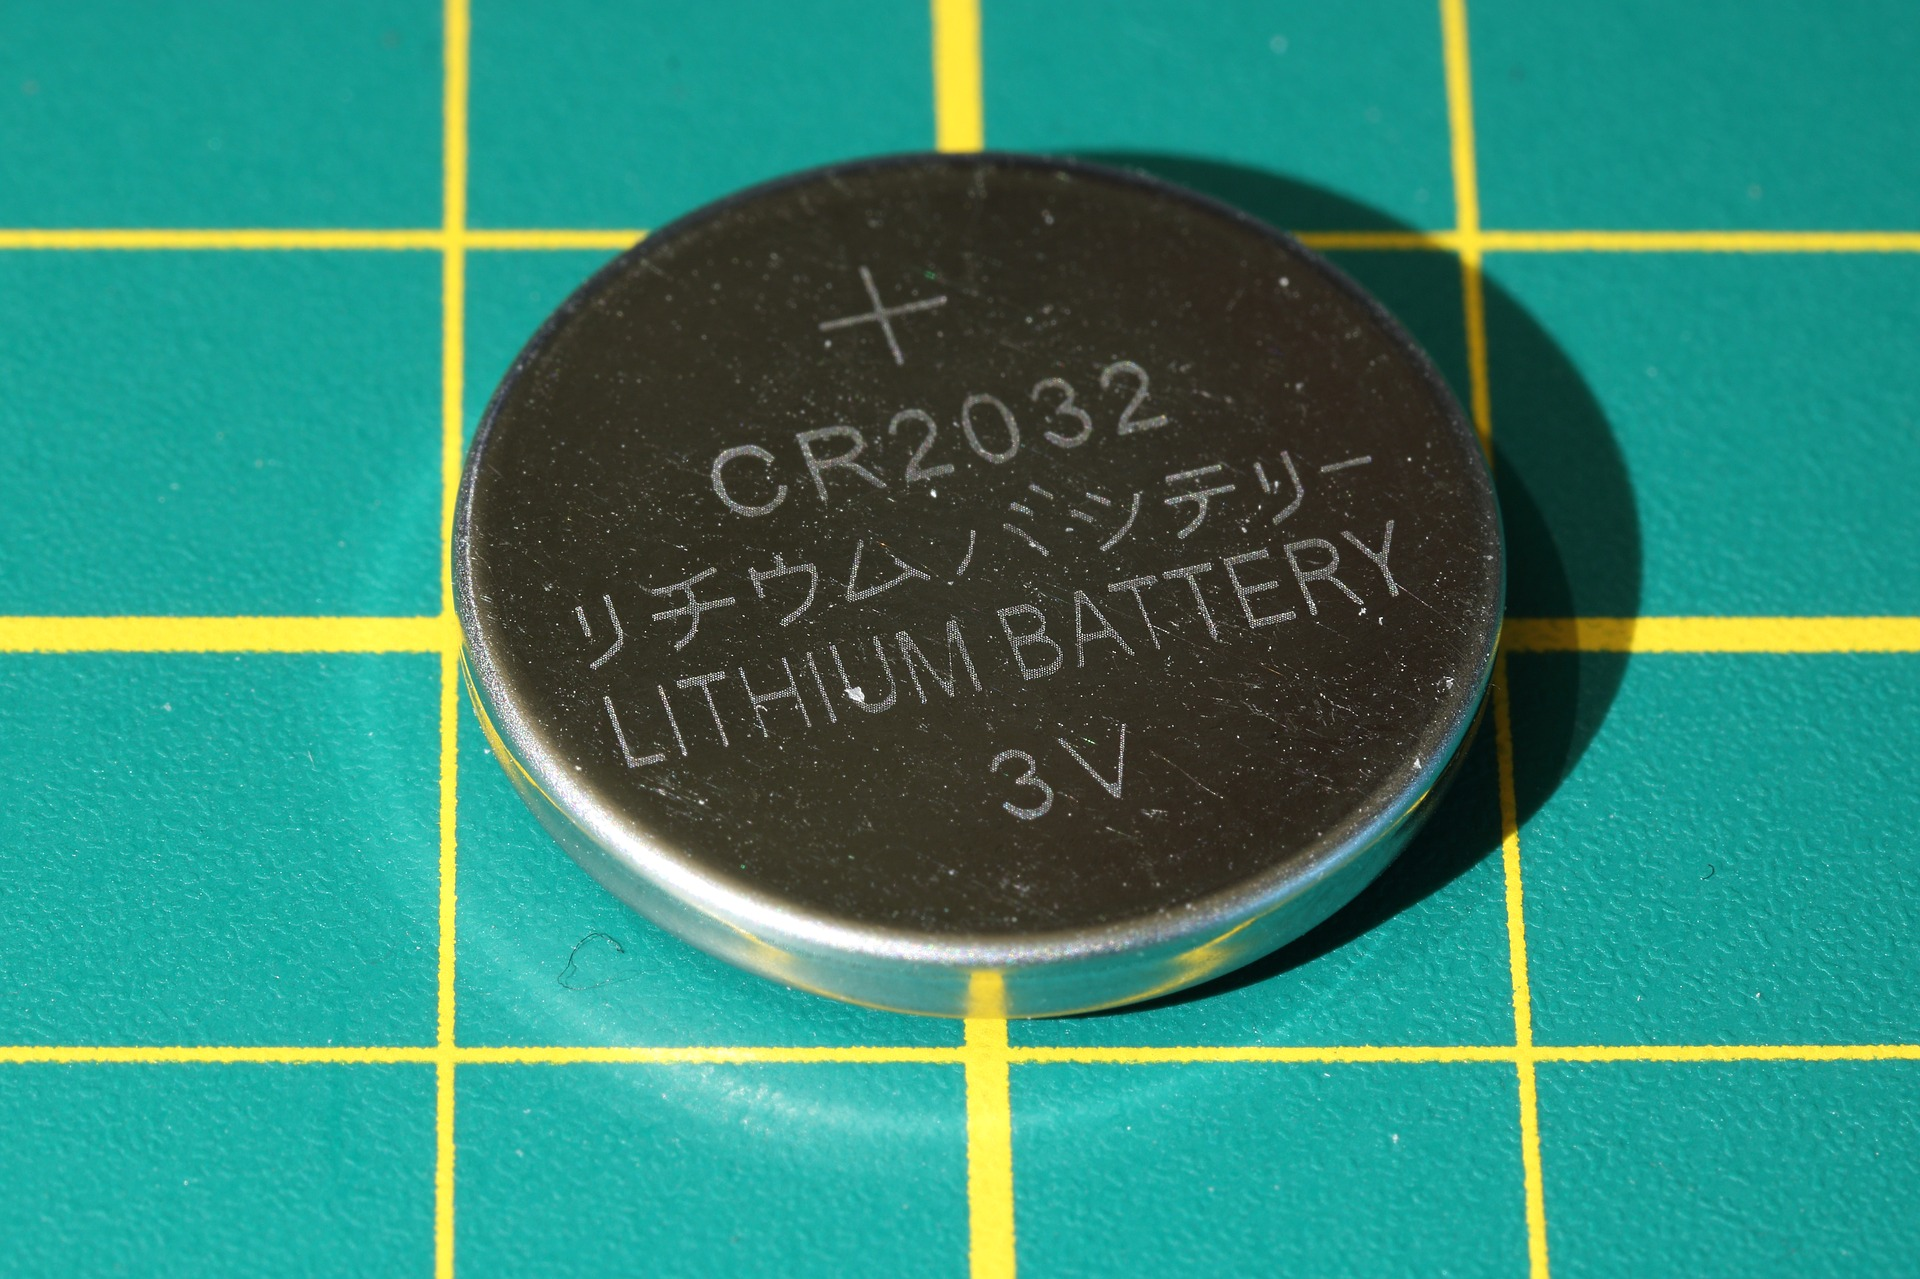 small lithium batteries